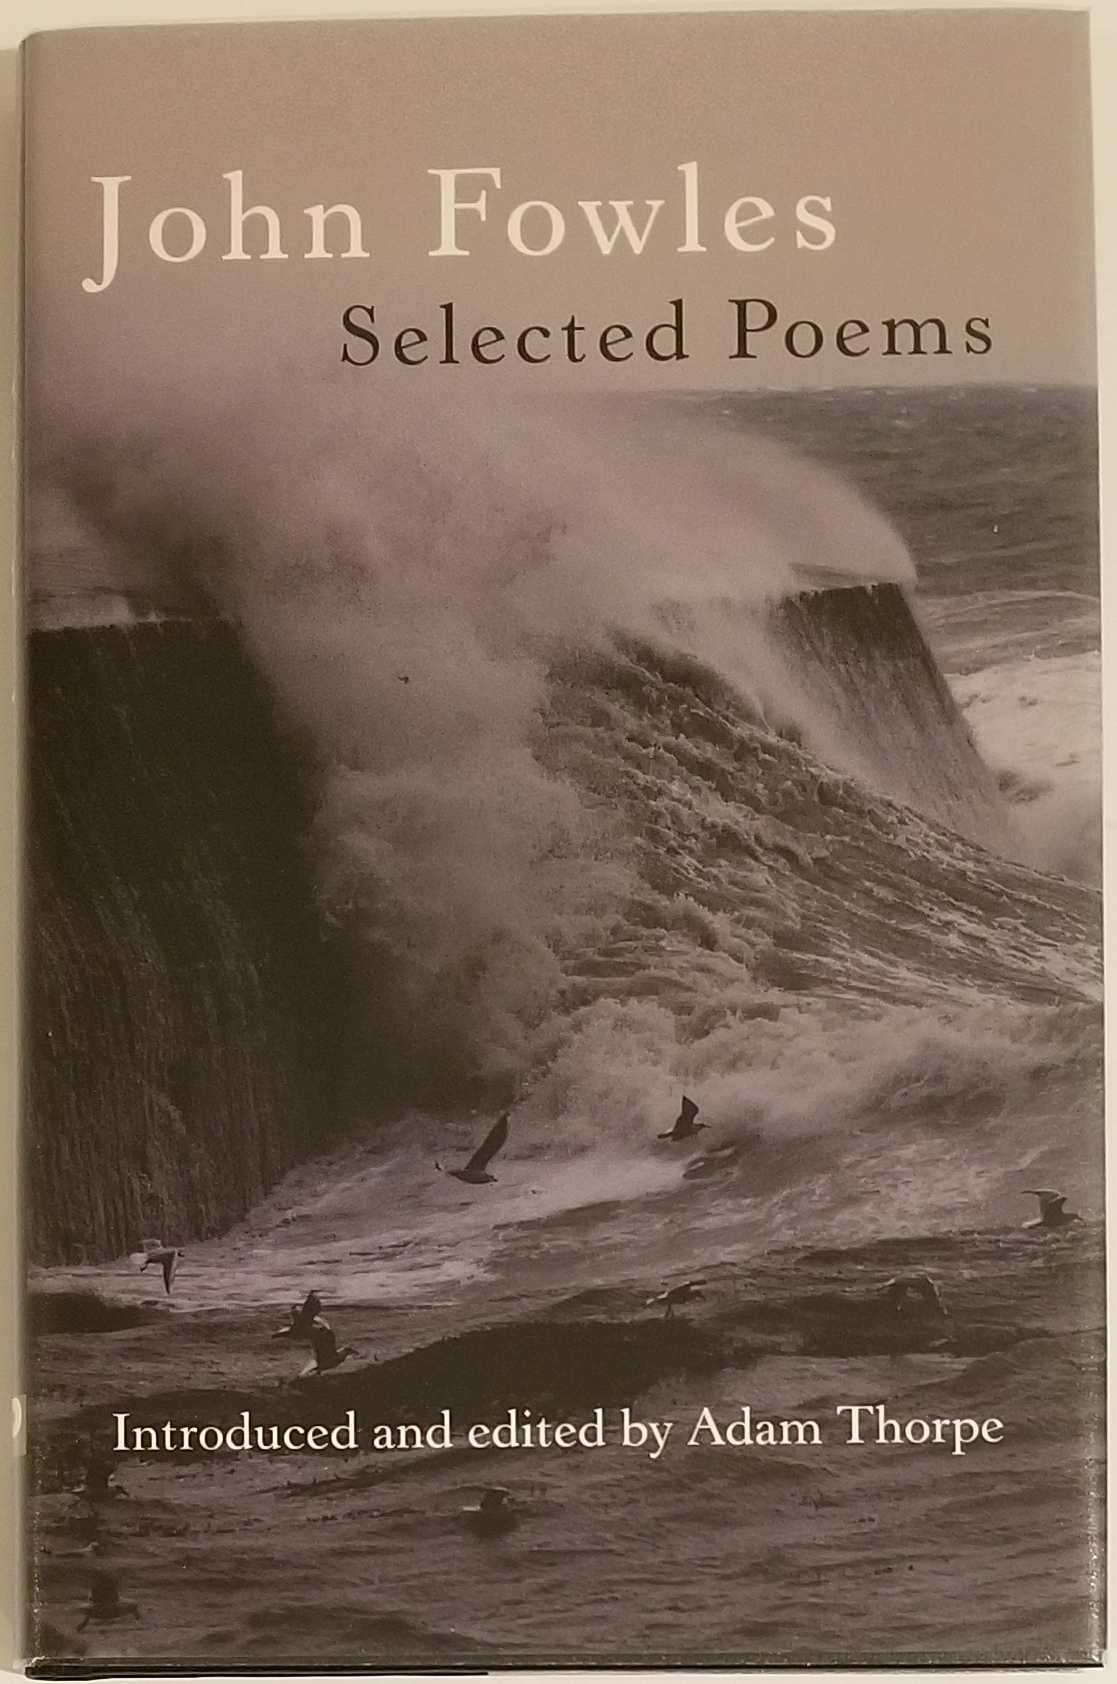 SELECTED POEMS. Introduced and Edited by Adam Thorpe. John Fowles.